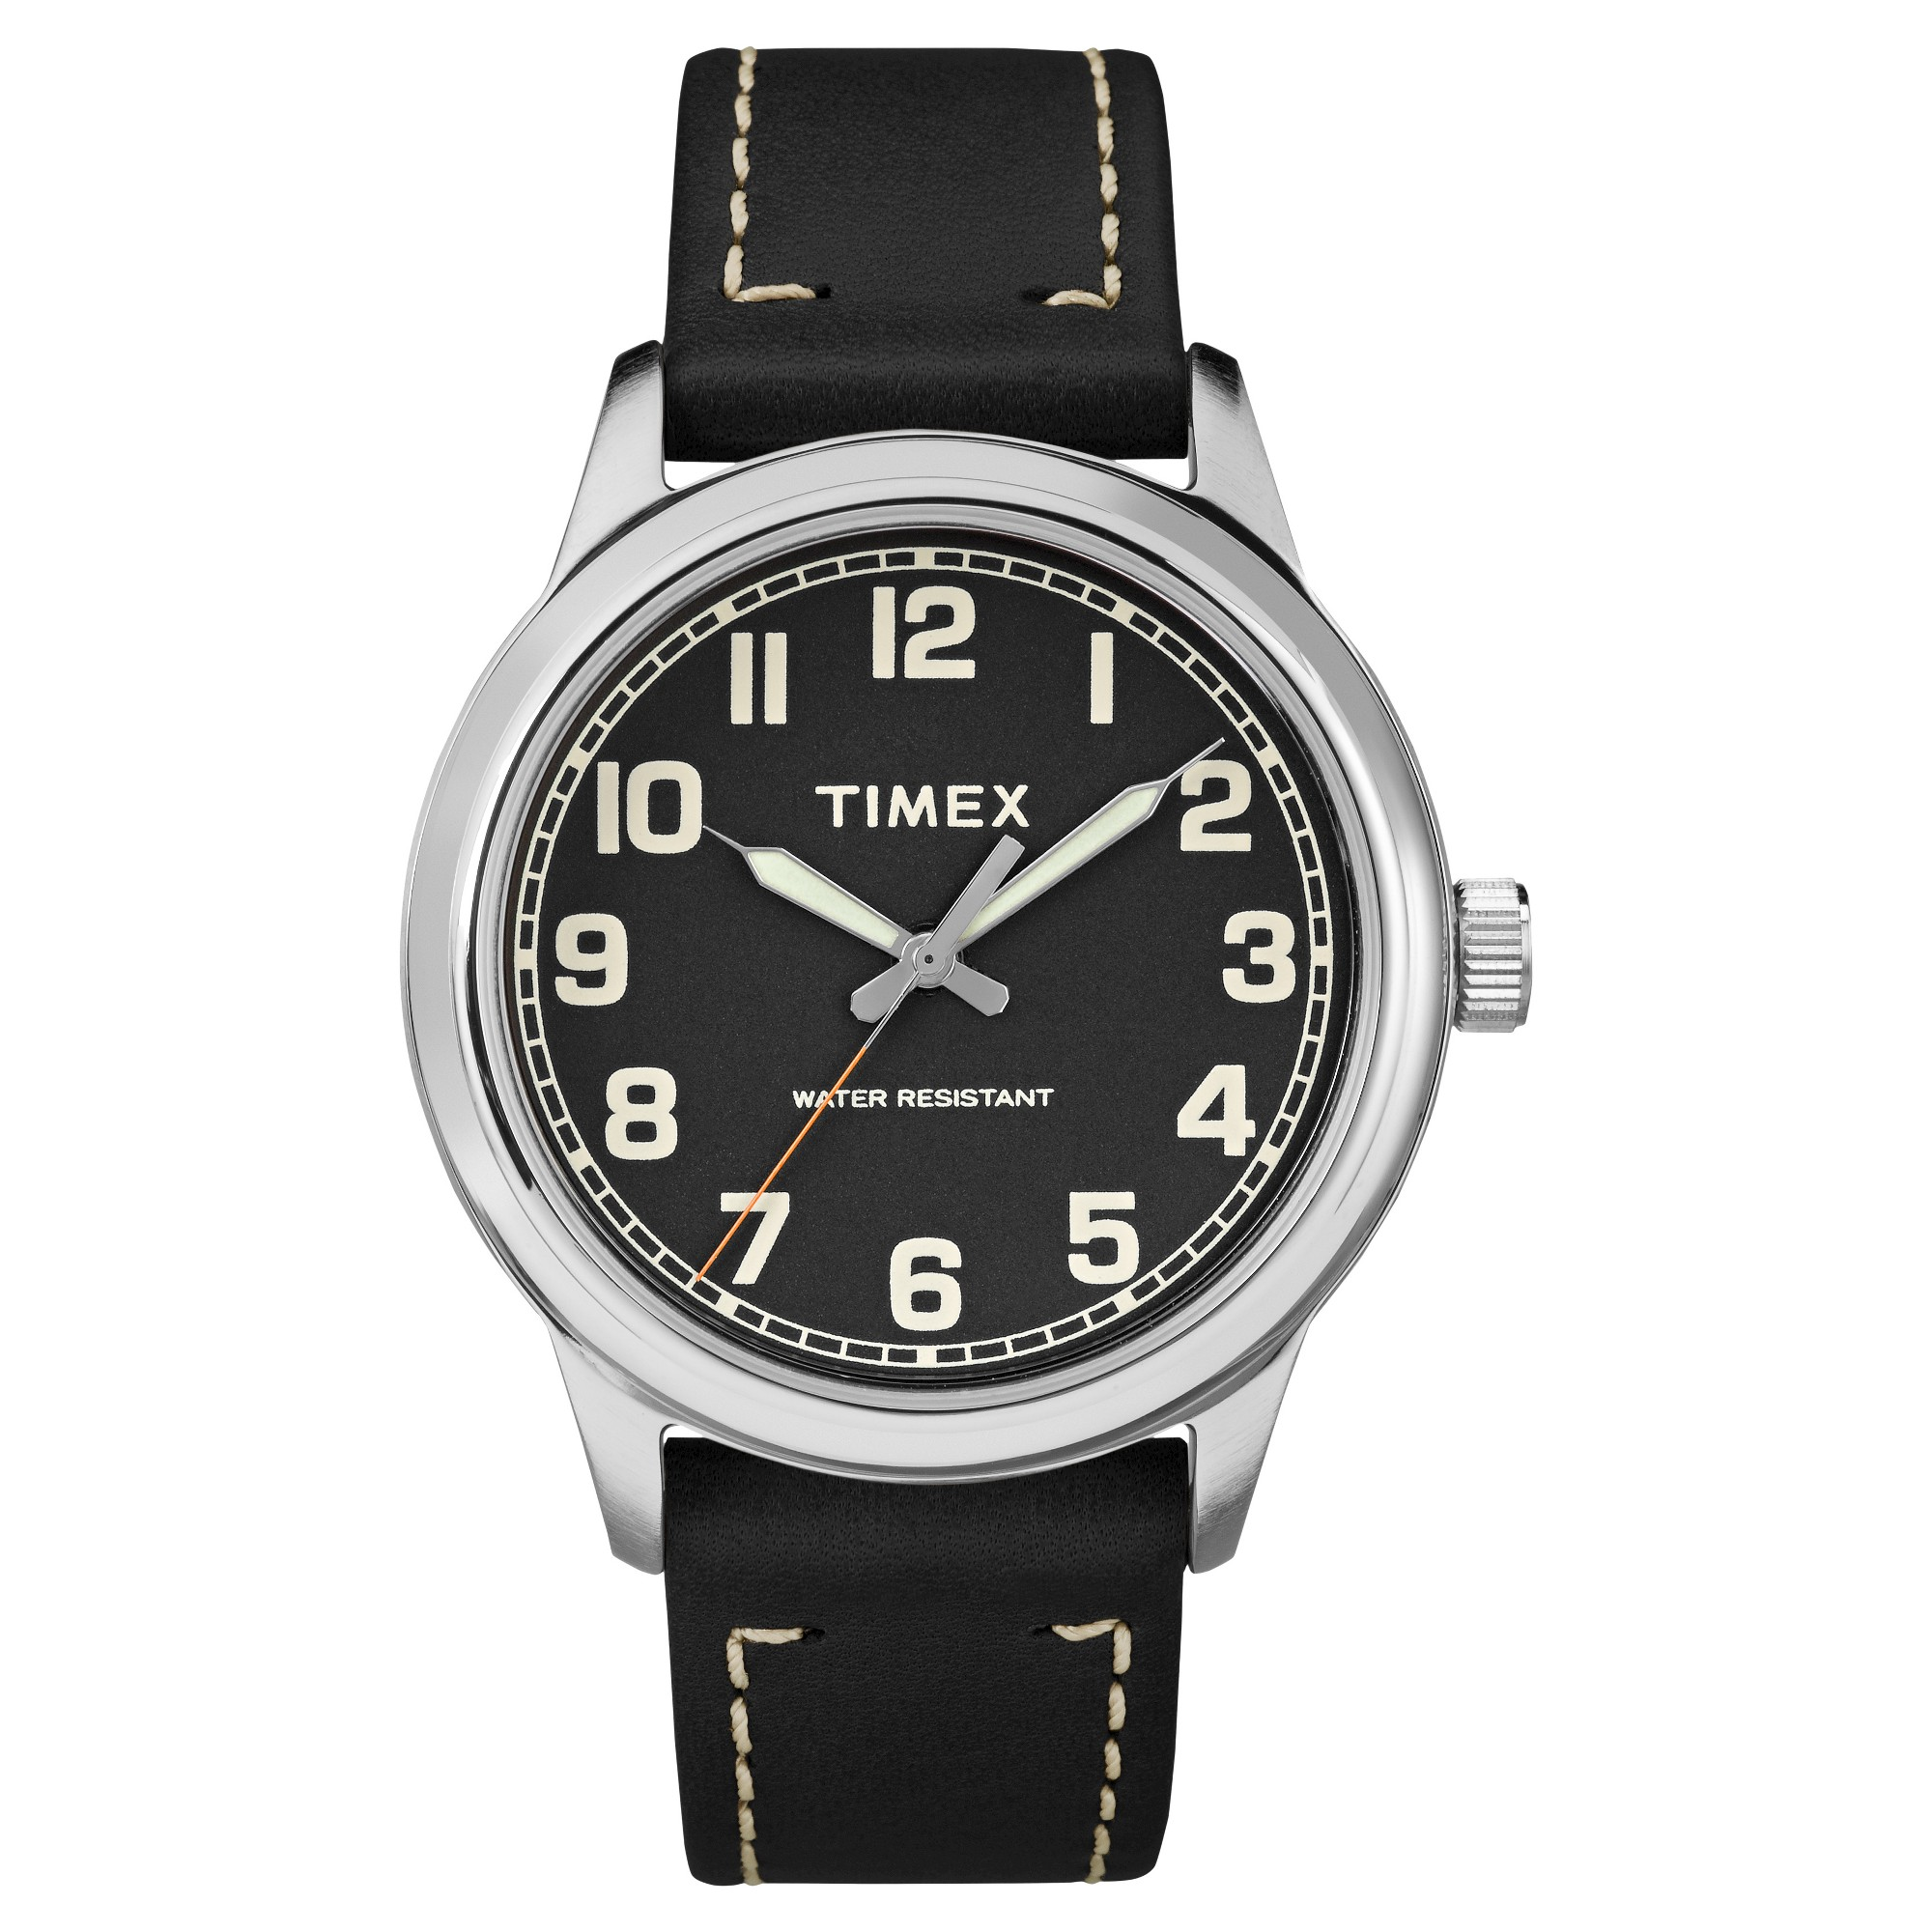 timex watches and timax more intelligent black quartz stainless s pin men explore watch steel